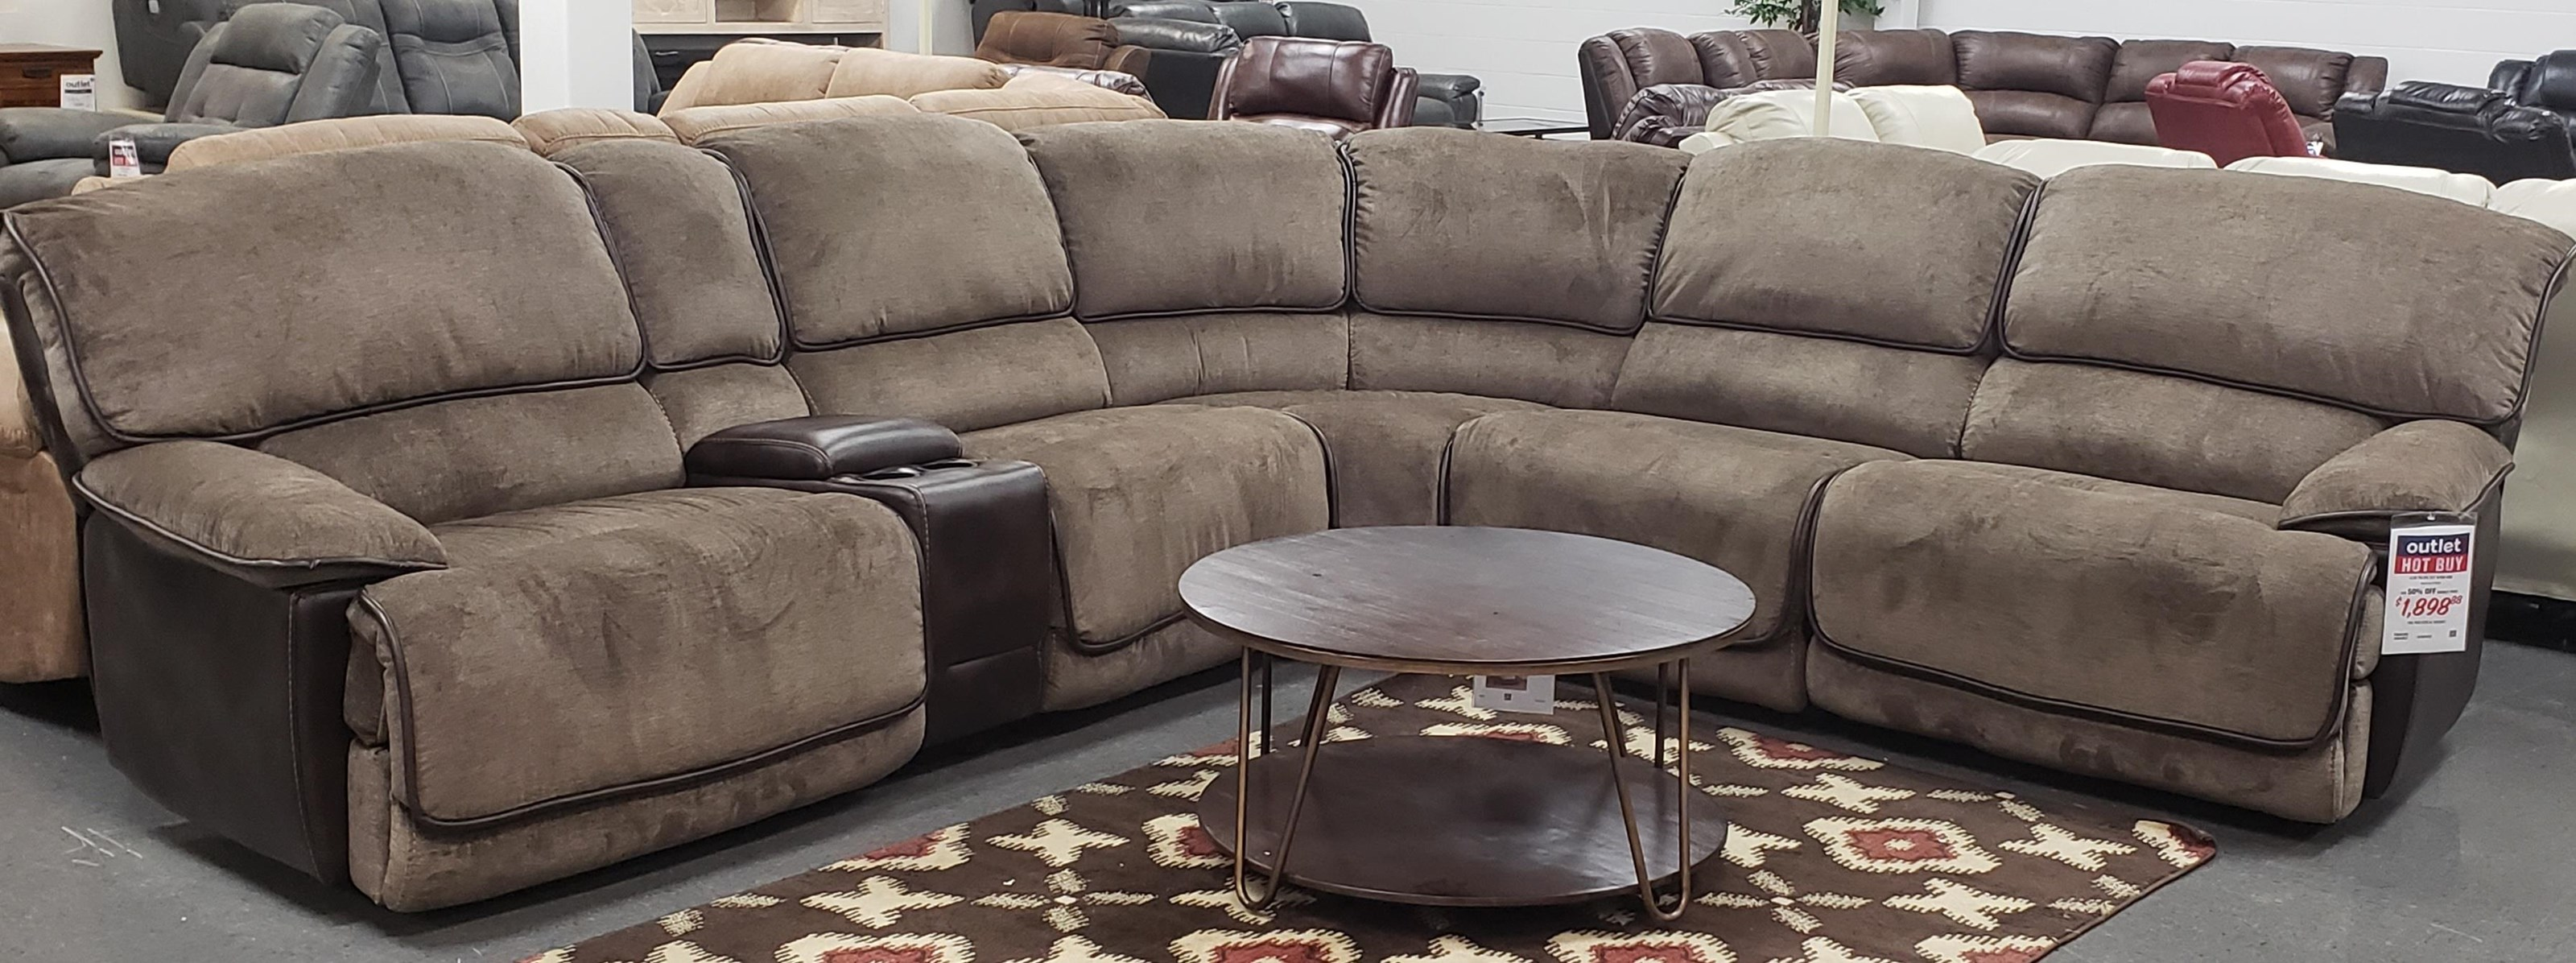 Clyde Power Sectional Sofa